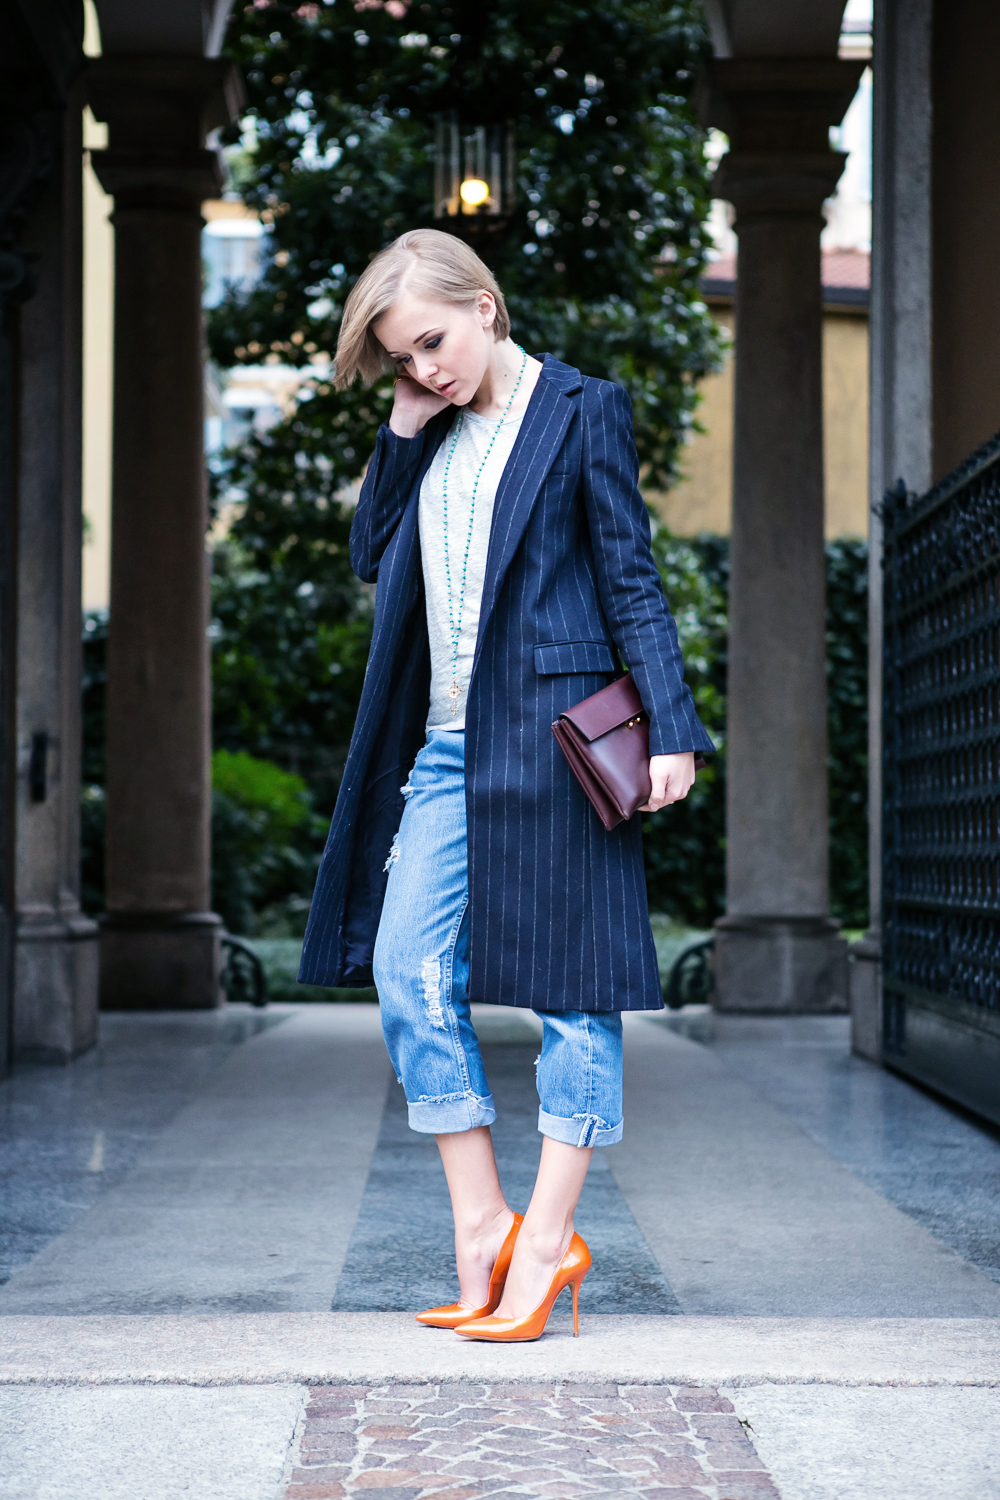 1thecablook darya kamalova russian italian fashion blogger blonde short hair pixie cut street style milan fashion week mfw aw14 15 ports show afterdrk first row zara coat casadei heels marni clutch malo presentation obika bar milano-35